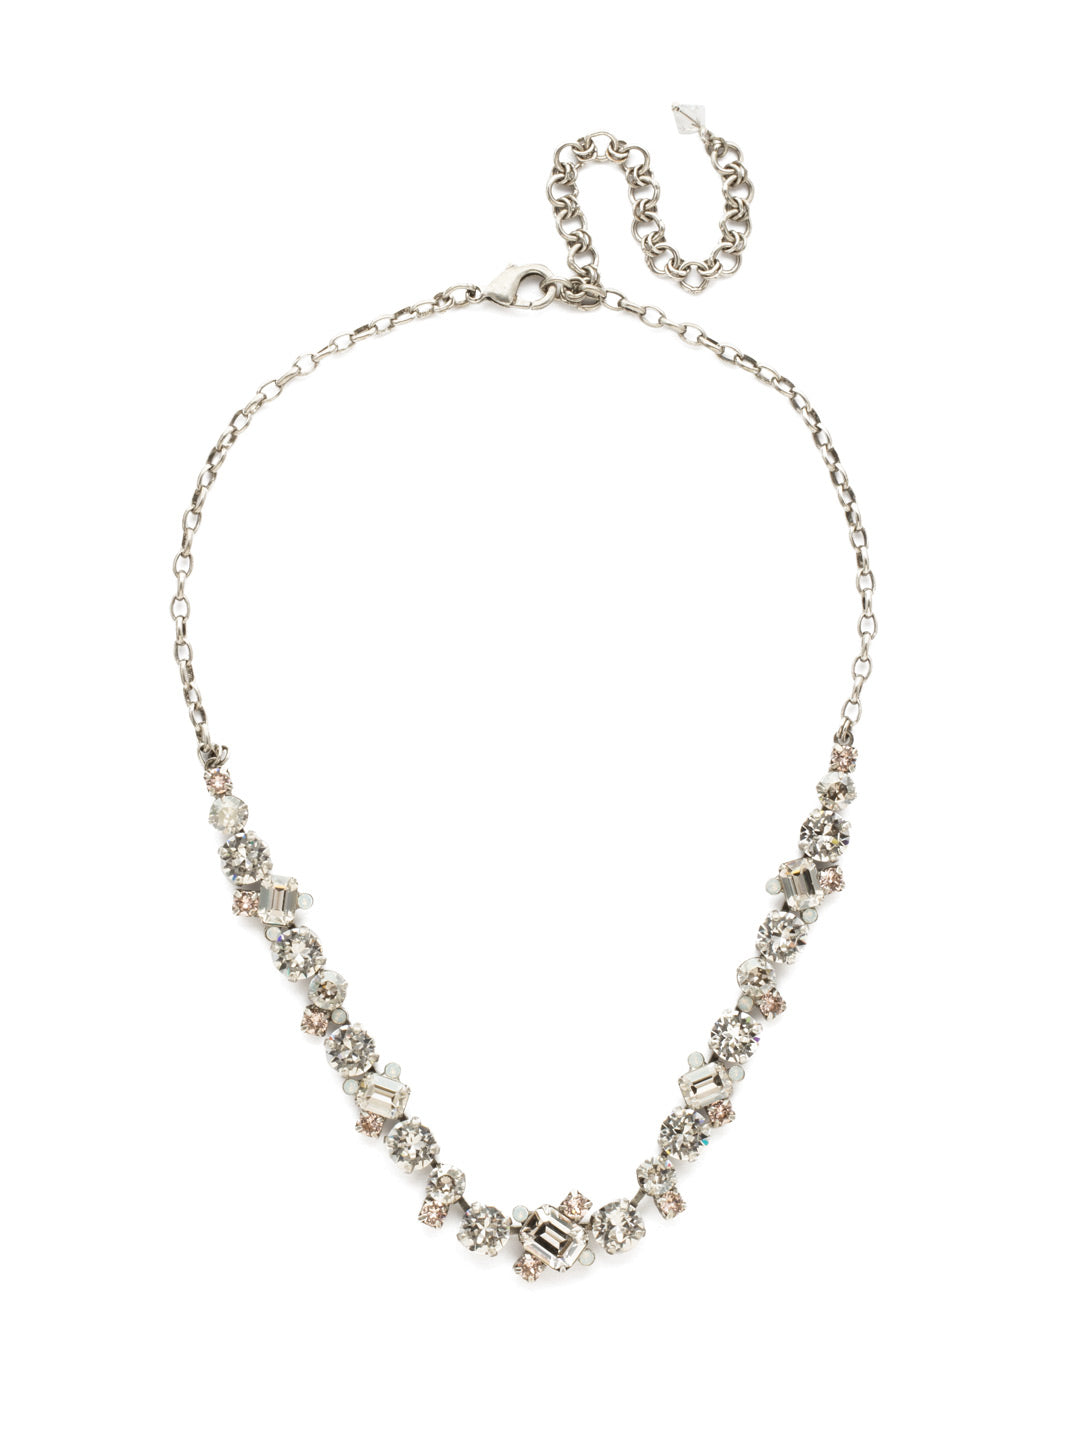 Novelty Multi-Cut Crystal Necklace - NDB78ASCLA